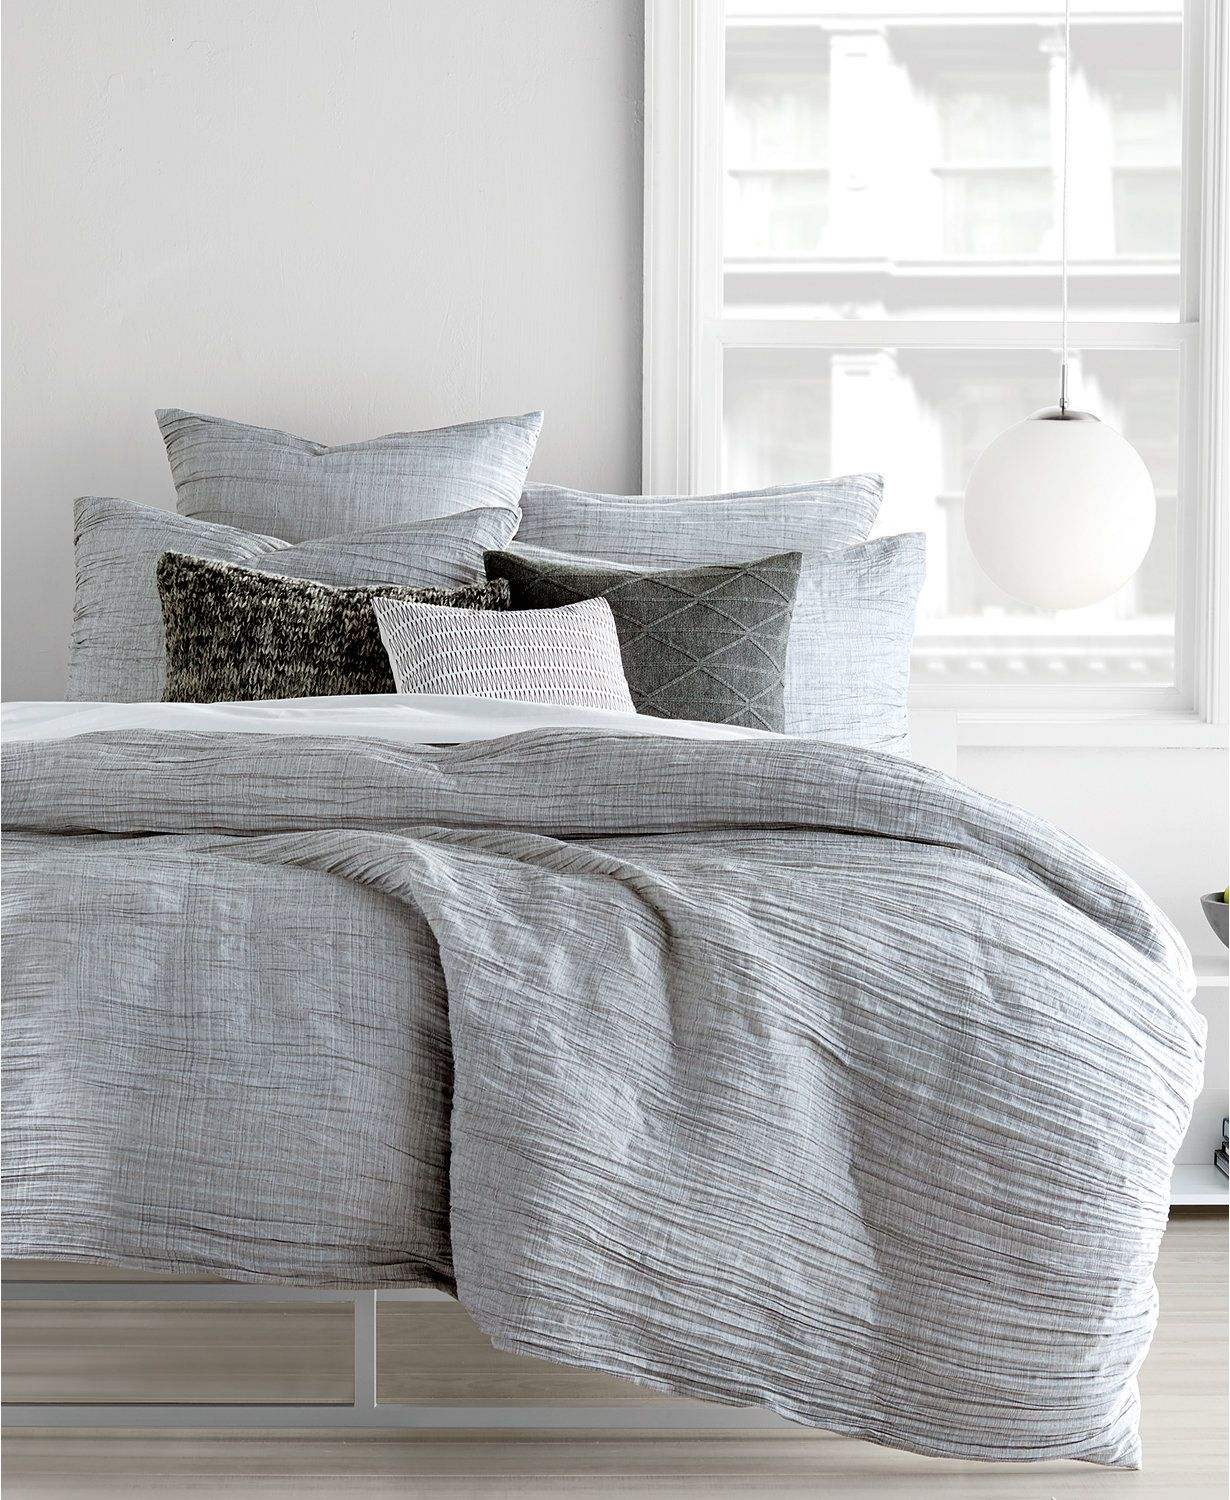 Dkny City Pleat Gray Full Queen Duvet Cover Bedding Collections Bed Bath